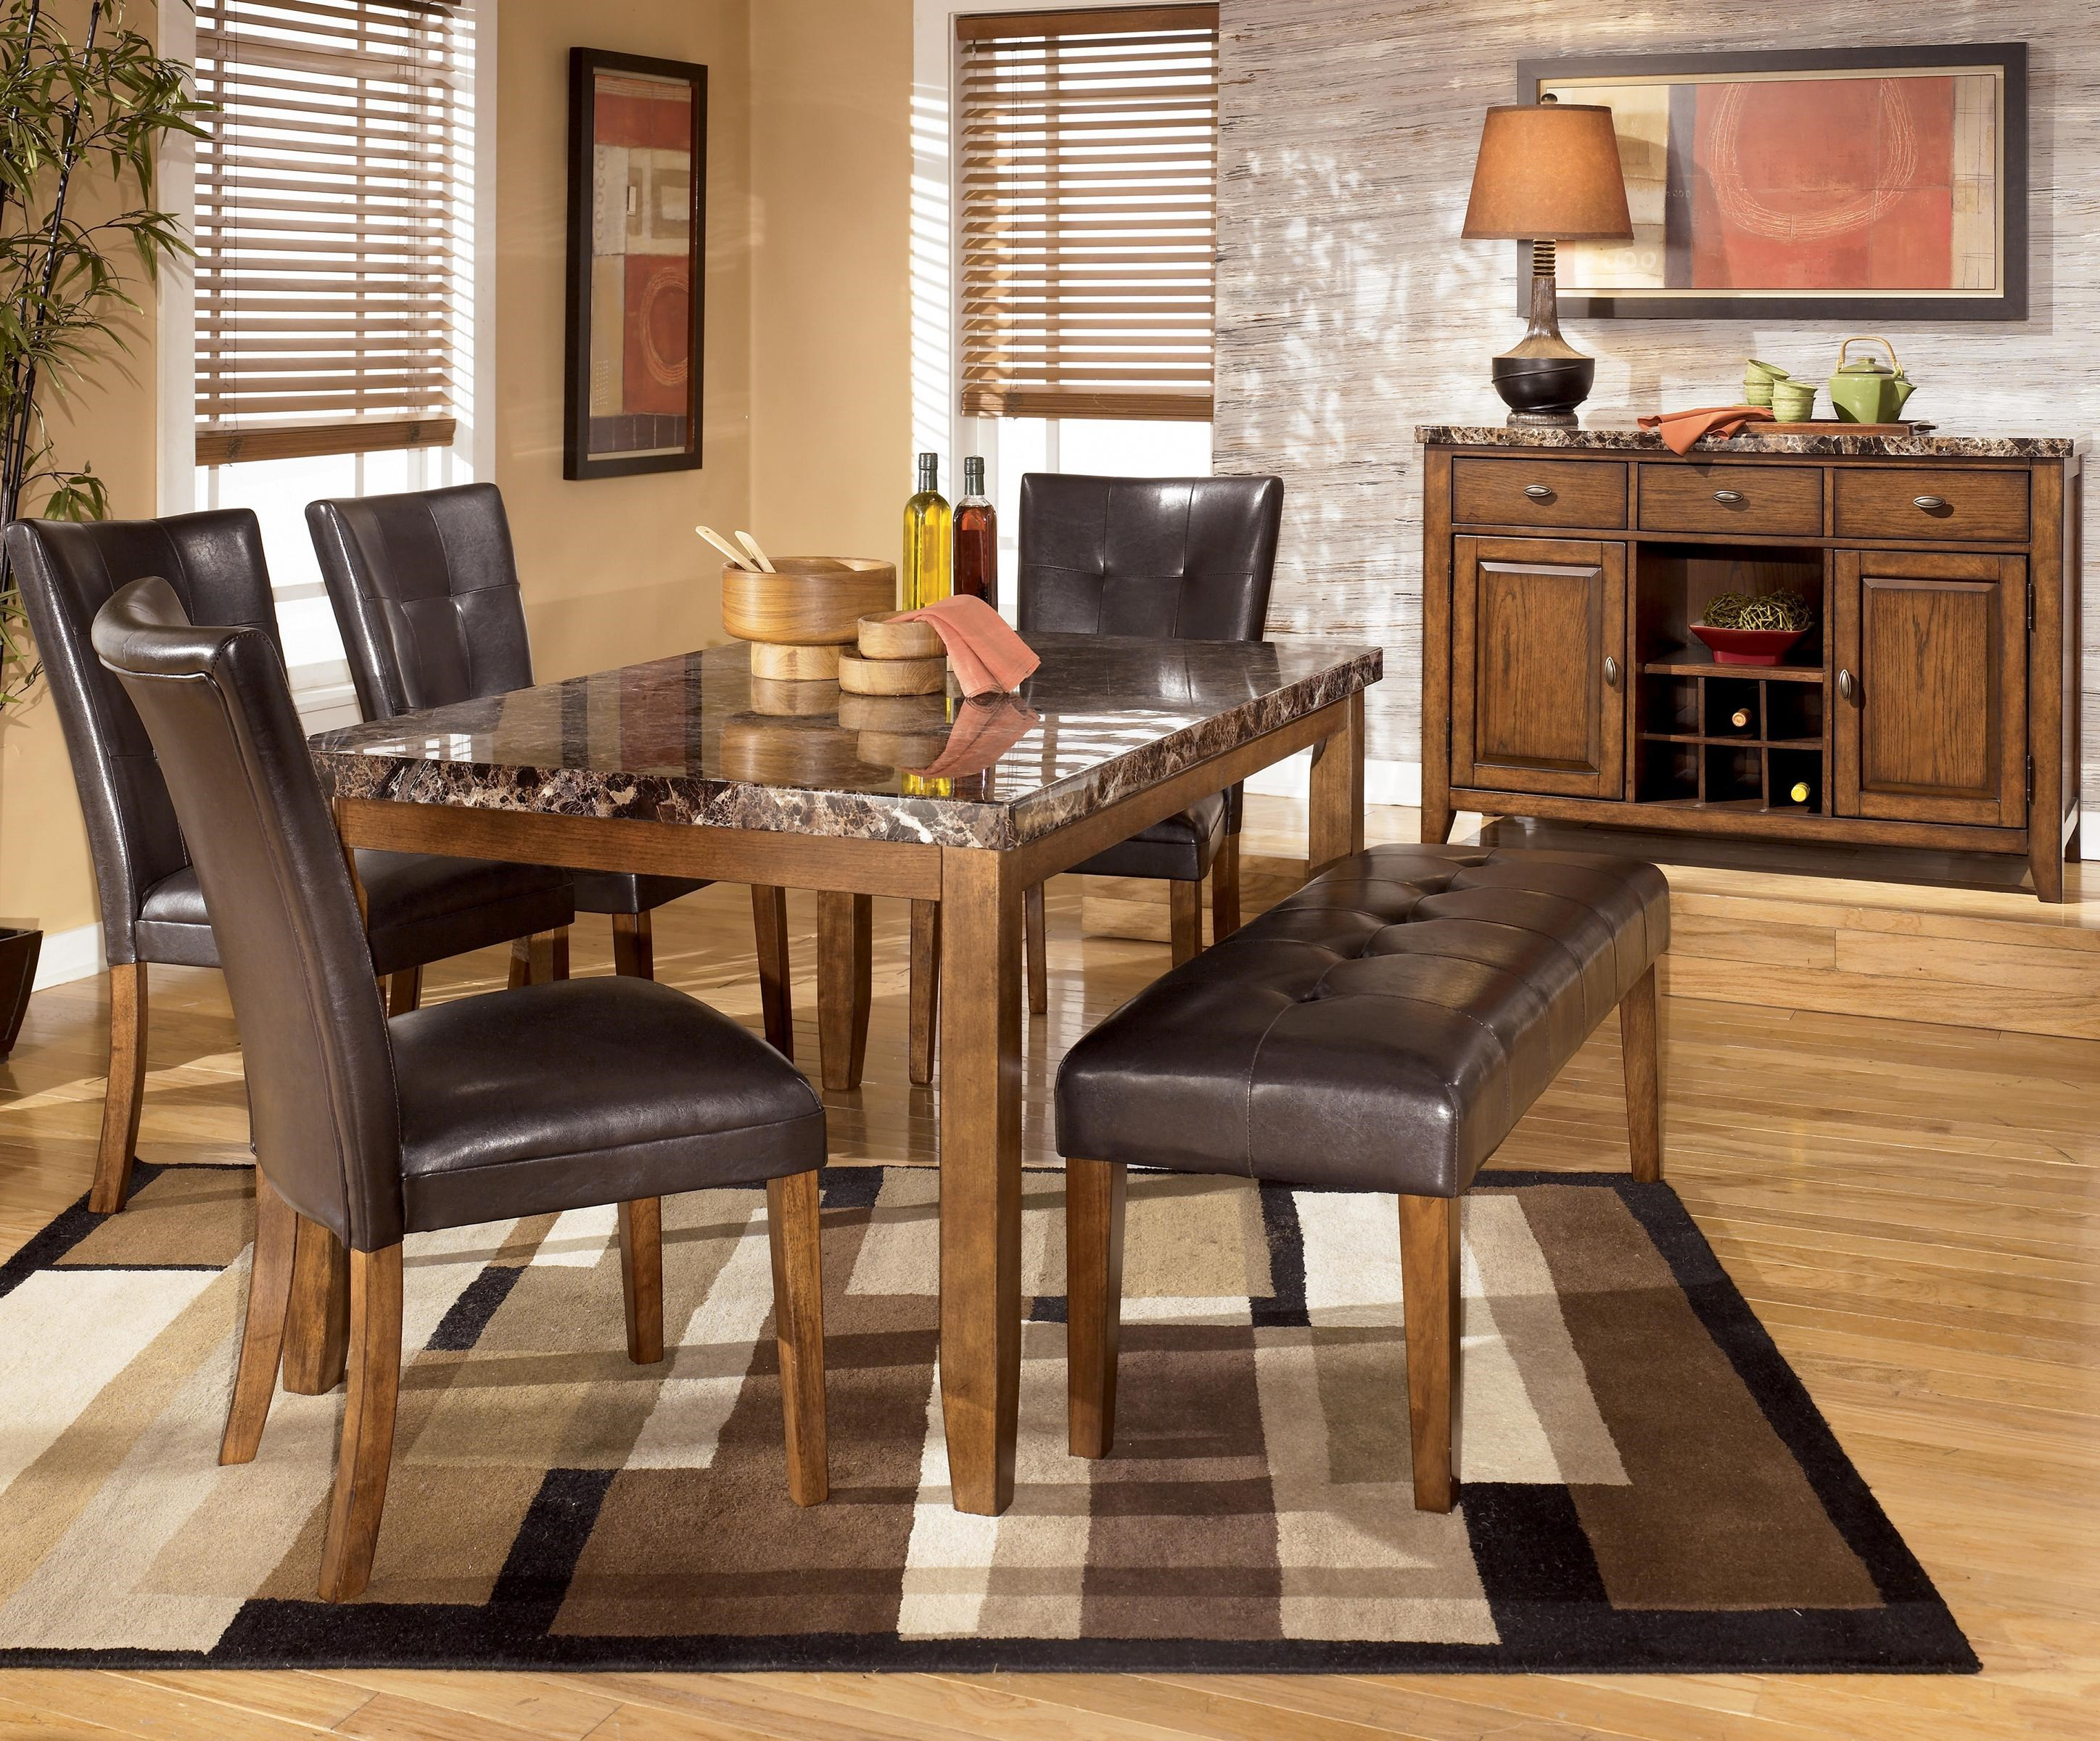 ... Signature Design by Ashley Lacey6-Piece Dining Table Chairs u0026 Bench Set & Signature Design by Ashley Lacey 6-Piece Dining Table with Side ...